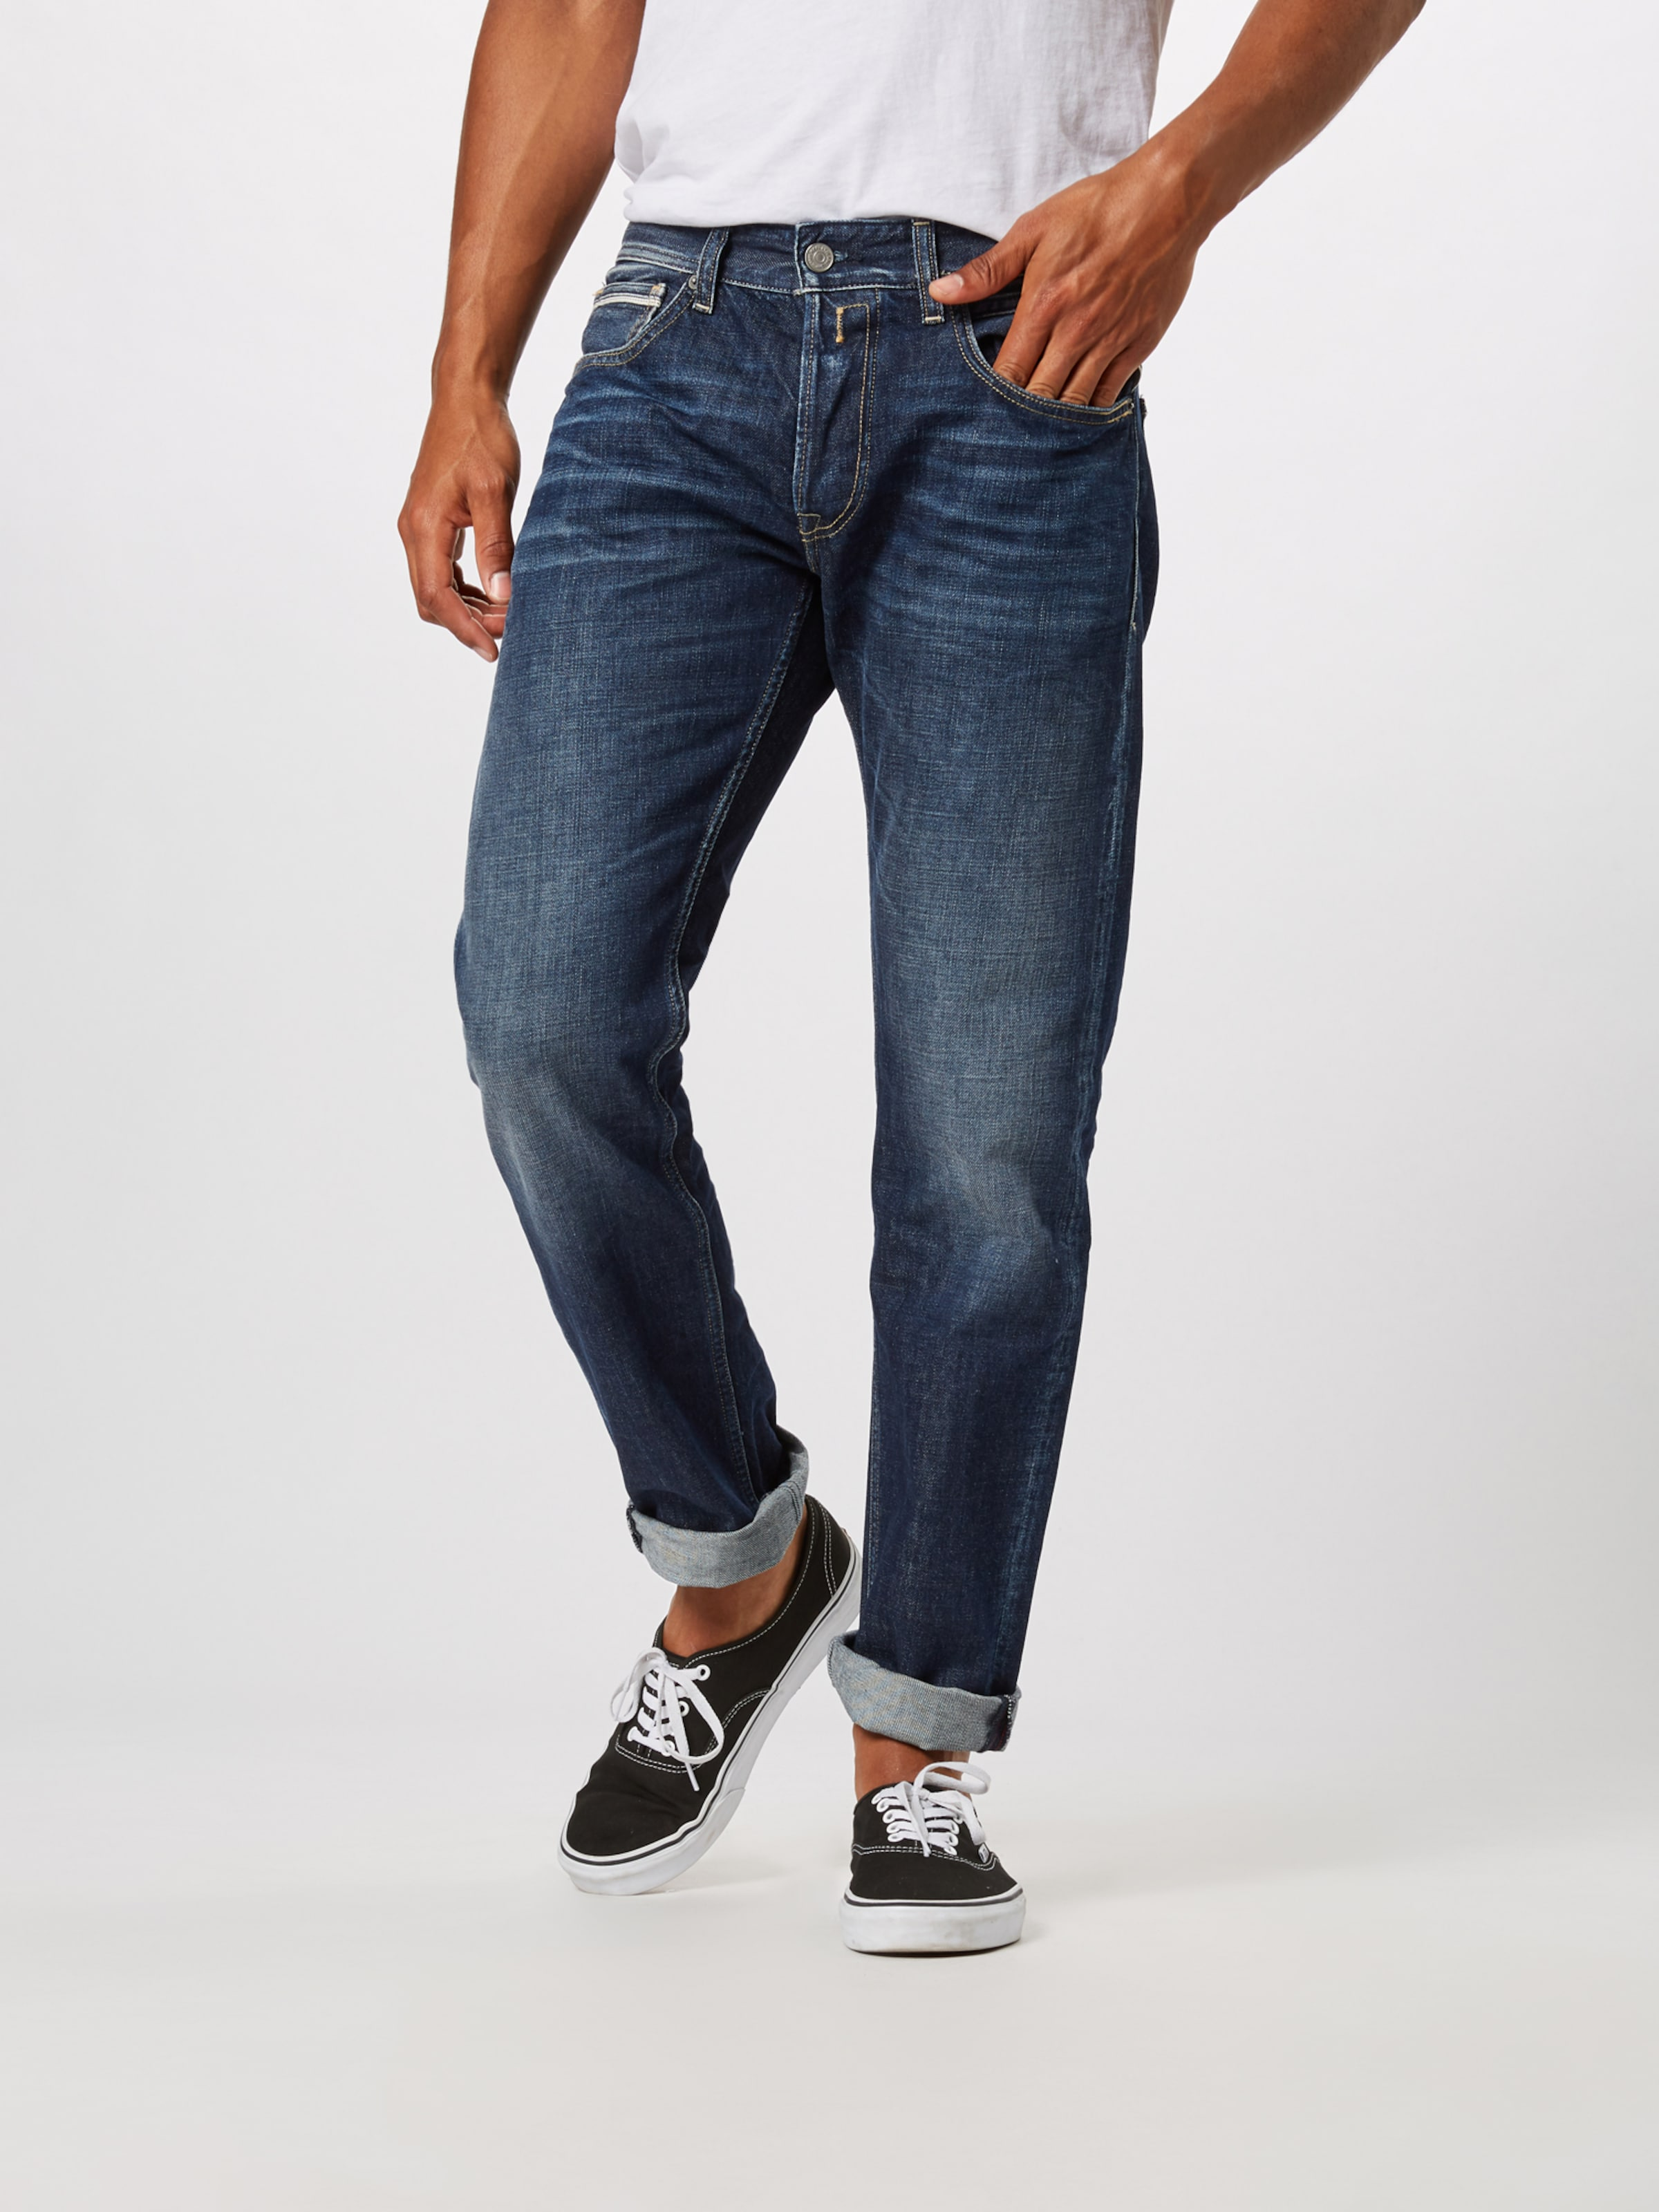 Denim Bleu Jean Replay 'grover' En 2H9EIWDY